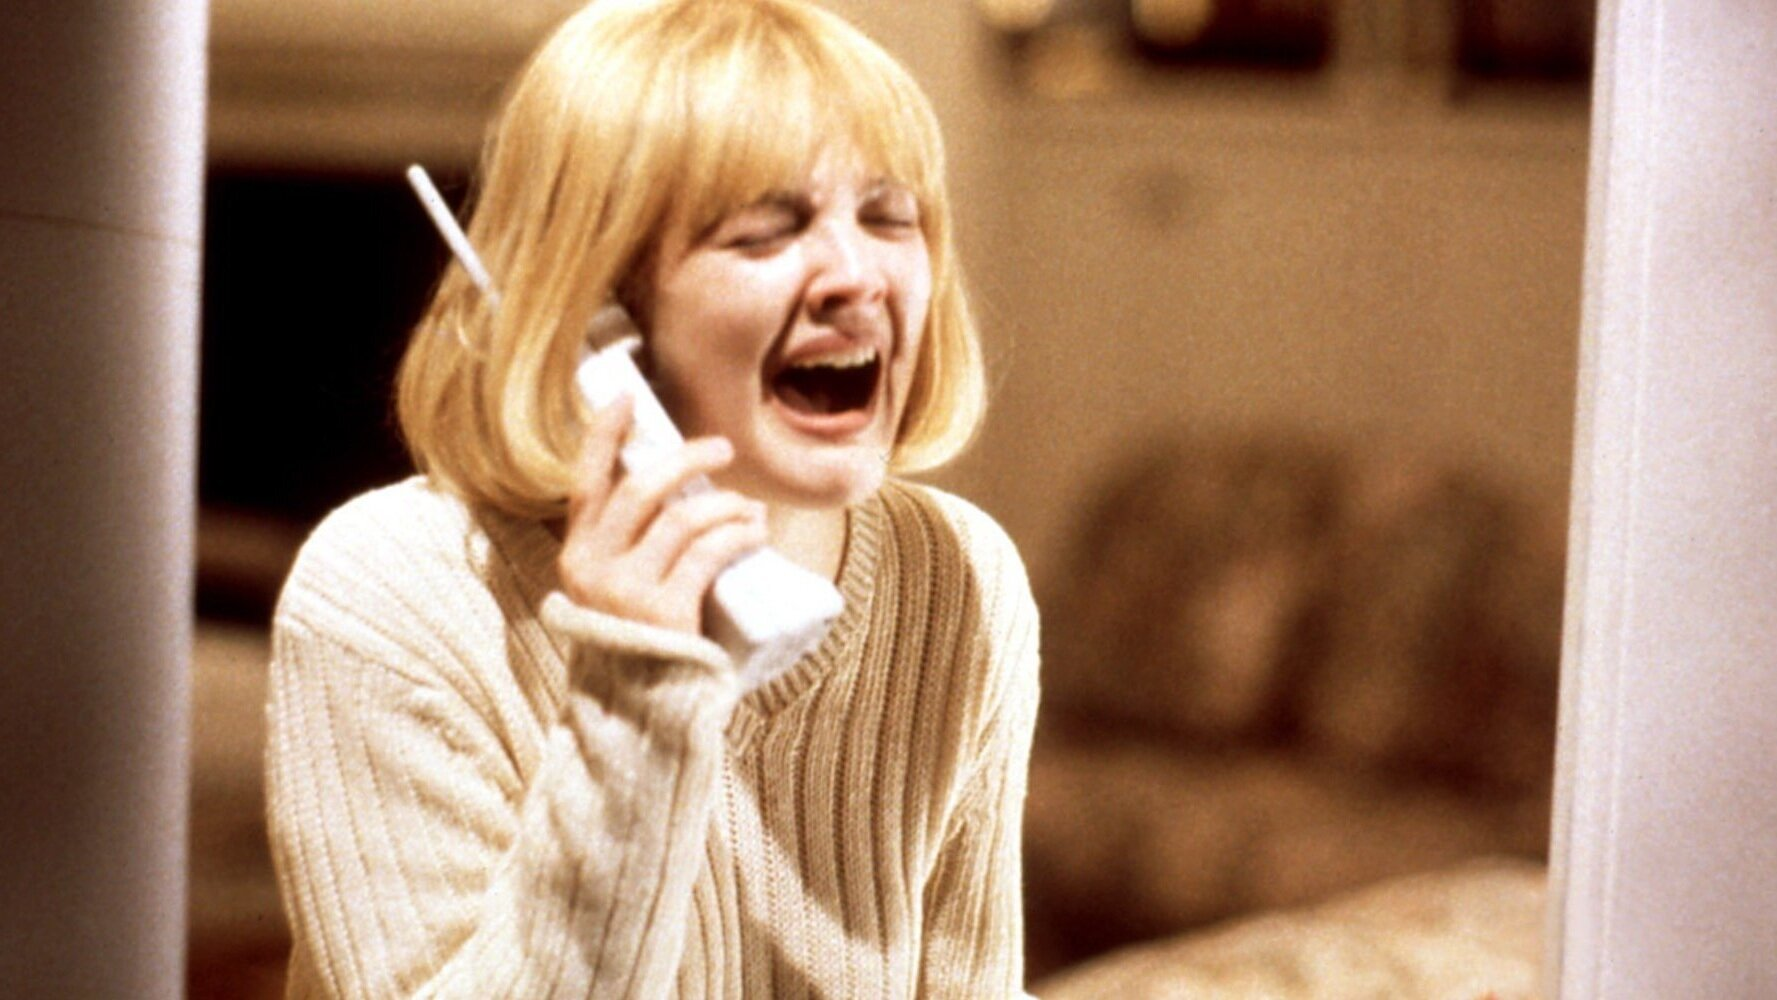 #51) Scream - (1996 - dir. Wes Craven)